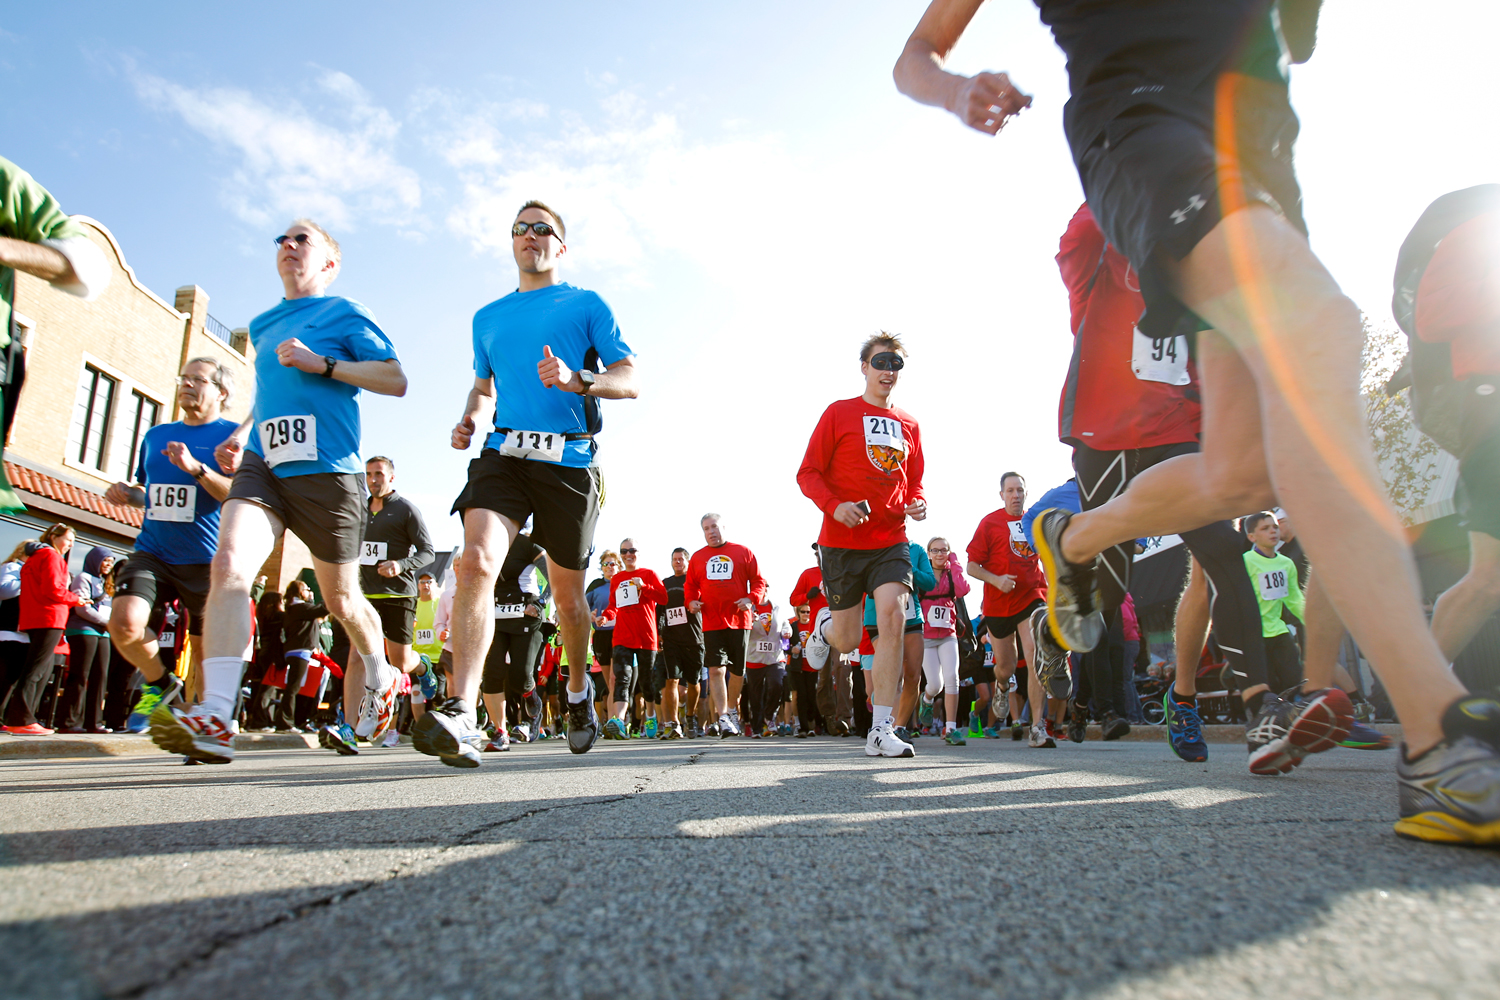 race-running-event-photographer-madison-wi-dane-county-ruthie-hauge-photography.jpg